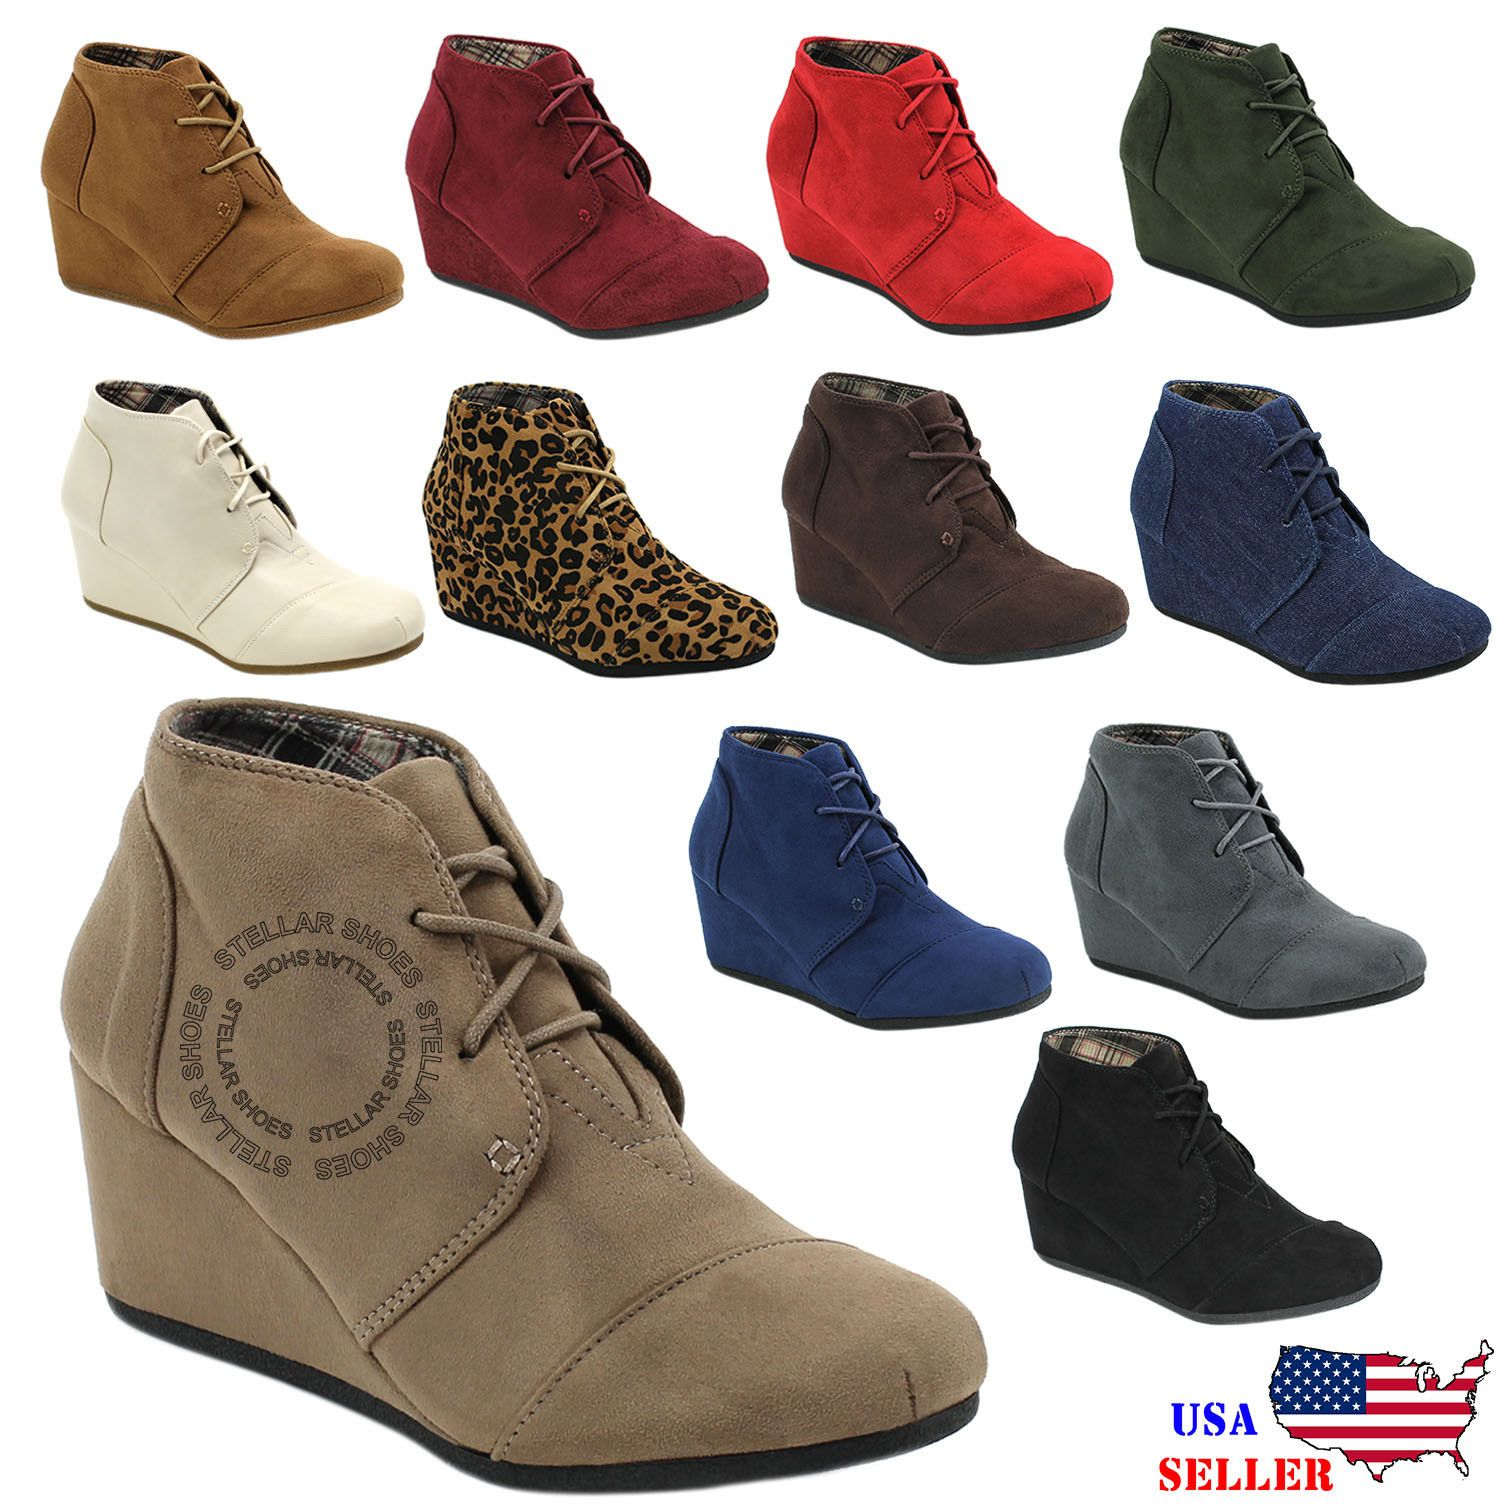 New Womens Round Toe Lace Up Wedge Heels Suede Ankle Boots Booties  WITH  BOX  31727a57a